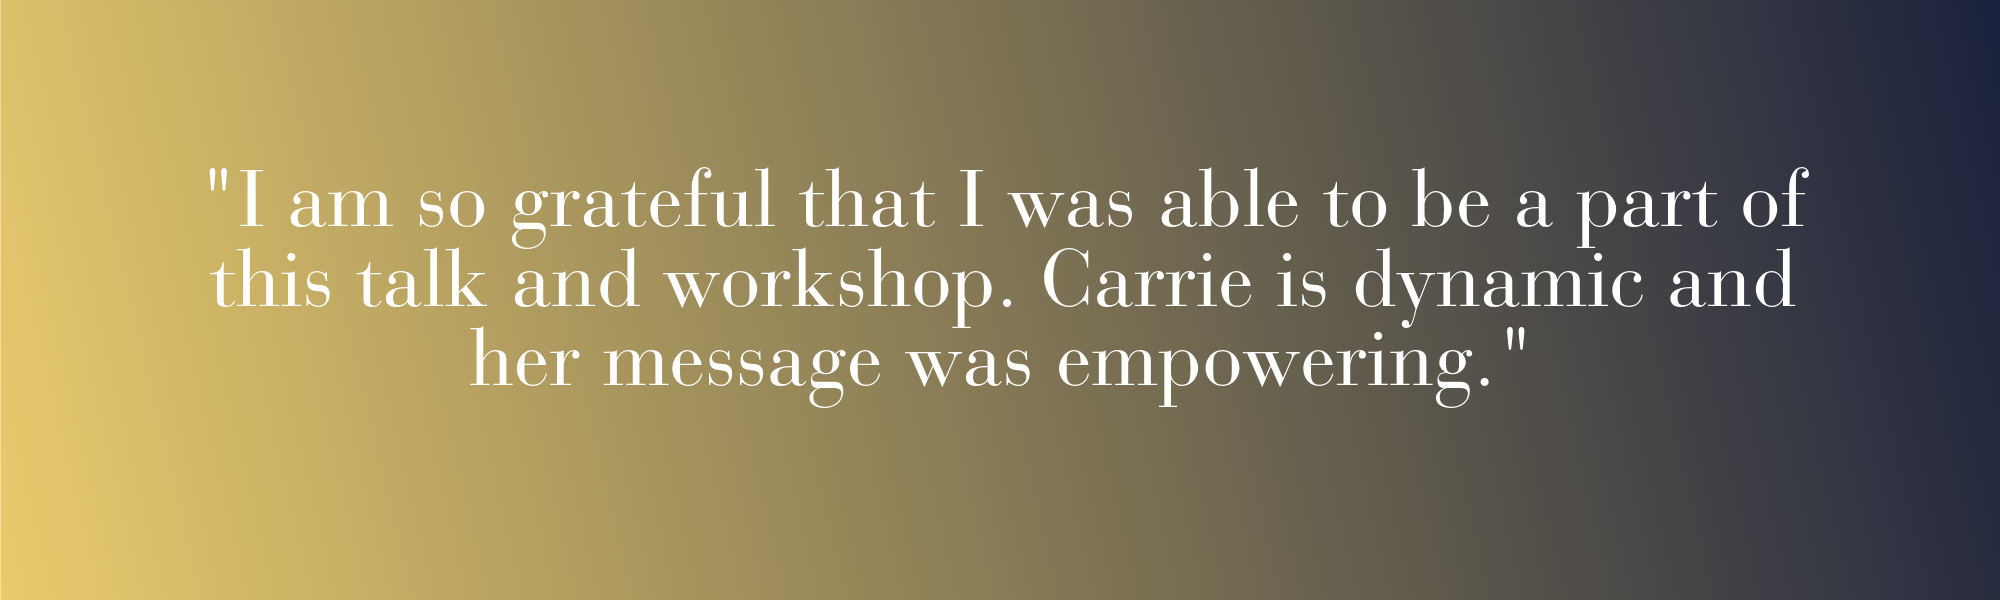 Workshop Quotes.png